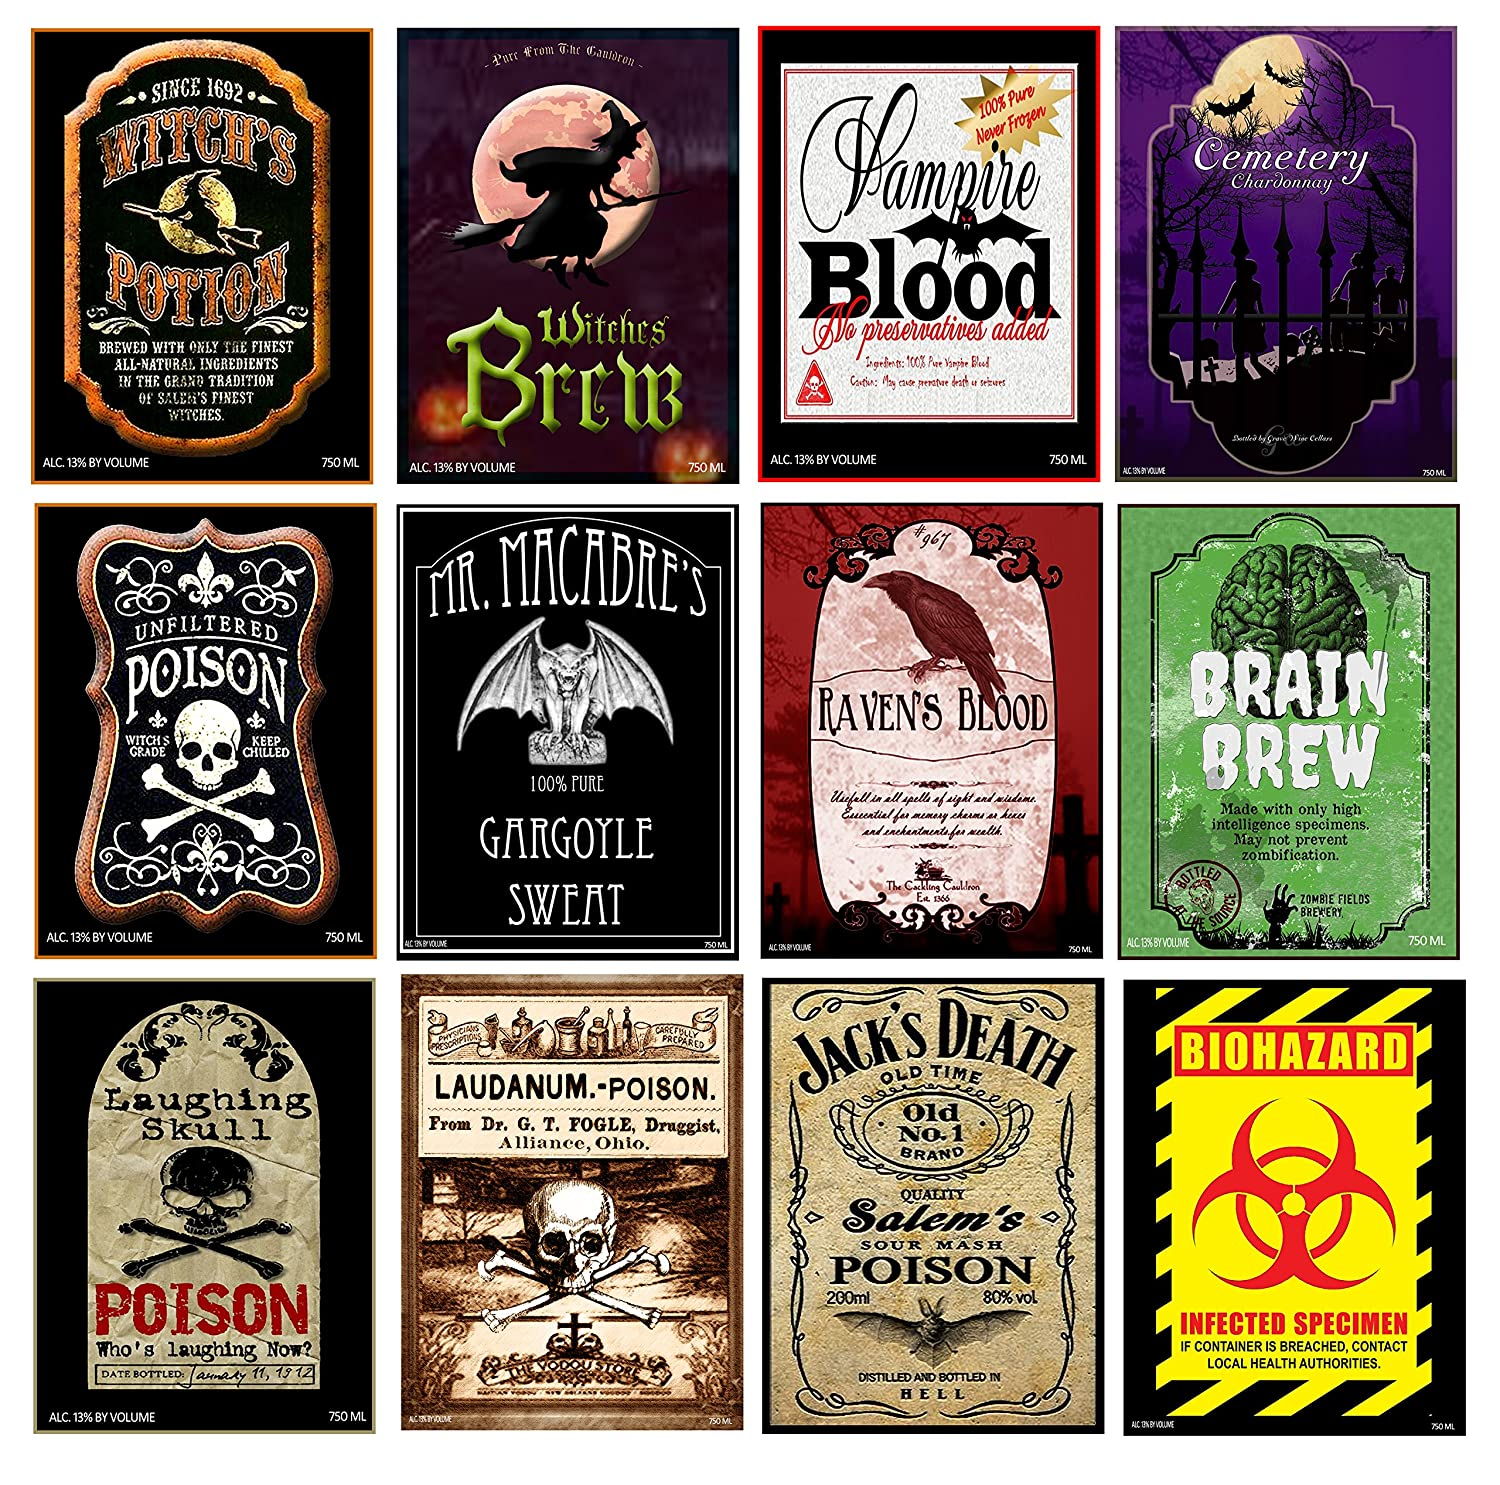 Halloween theme bottle labels are great for adding spooky Halloween fun to your Halloween party drinks